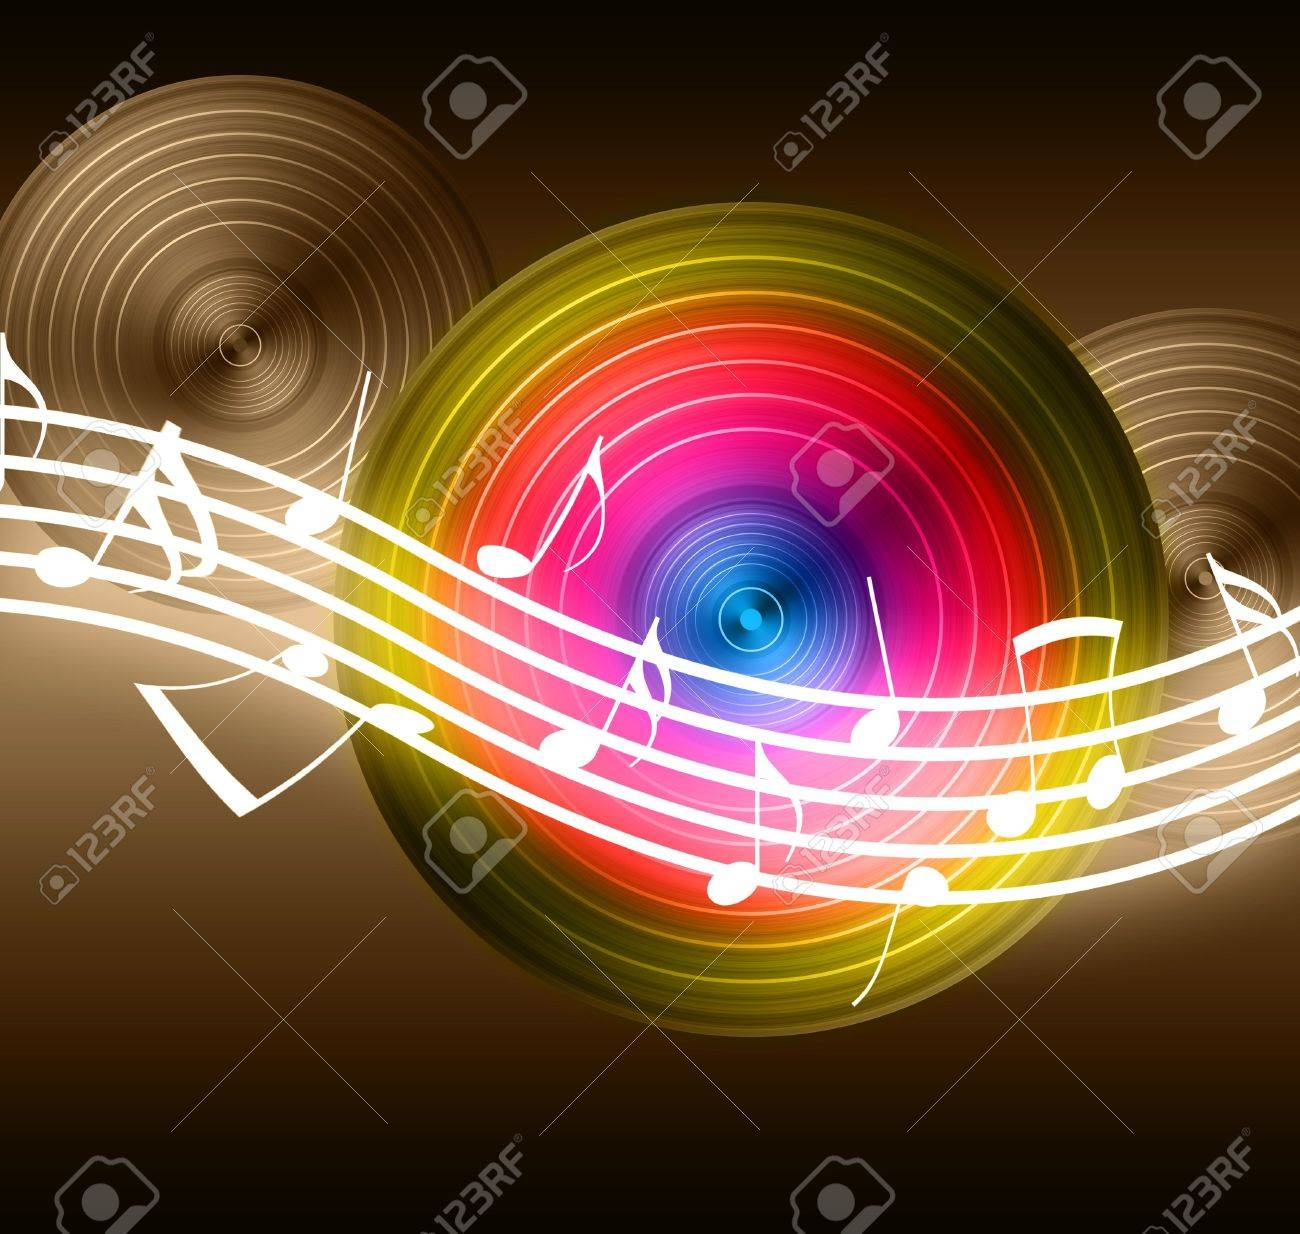 Flowing Music Notes on Vinyl Record Background Stock Photo - 6279866